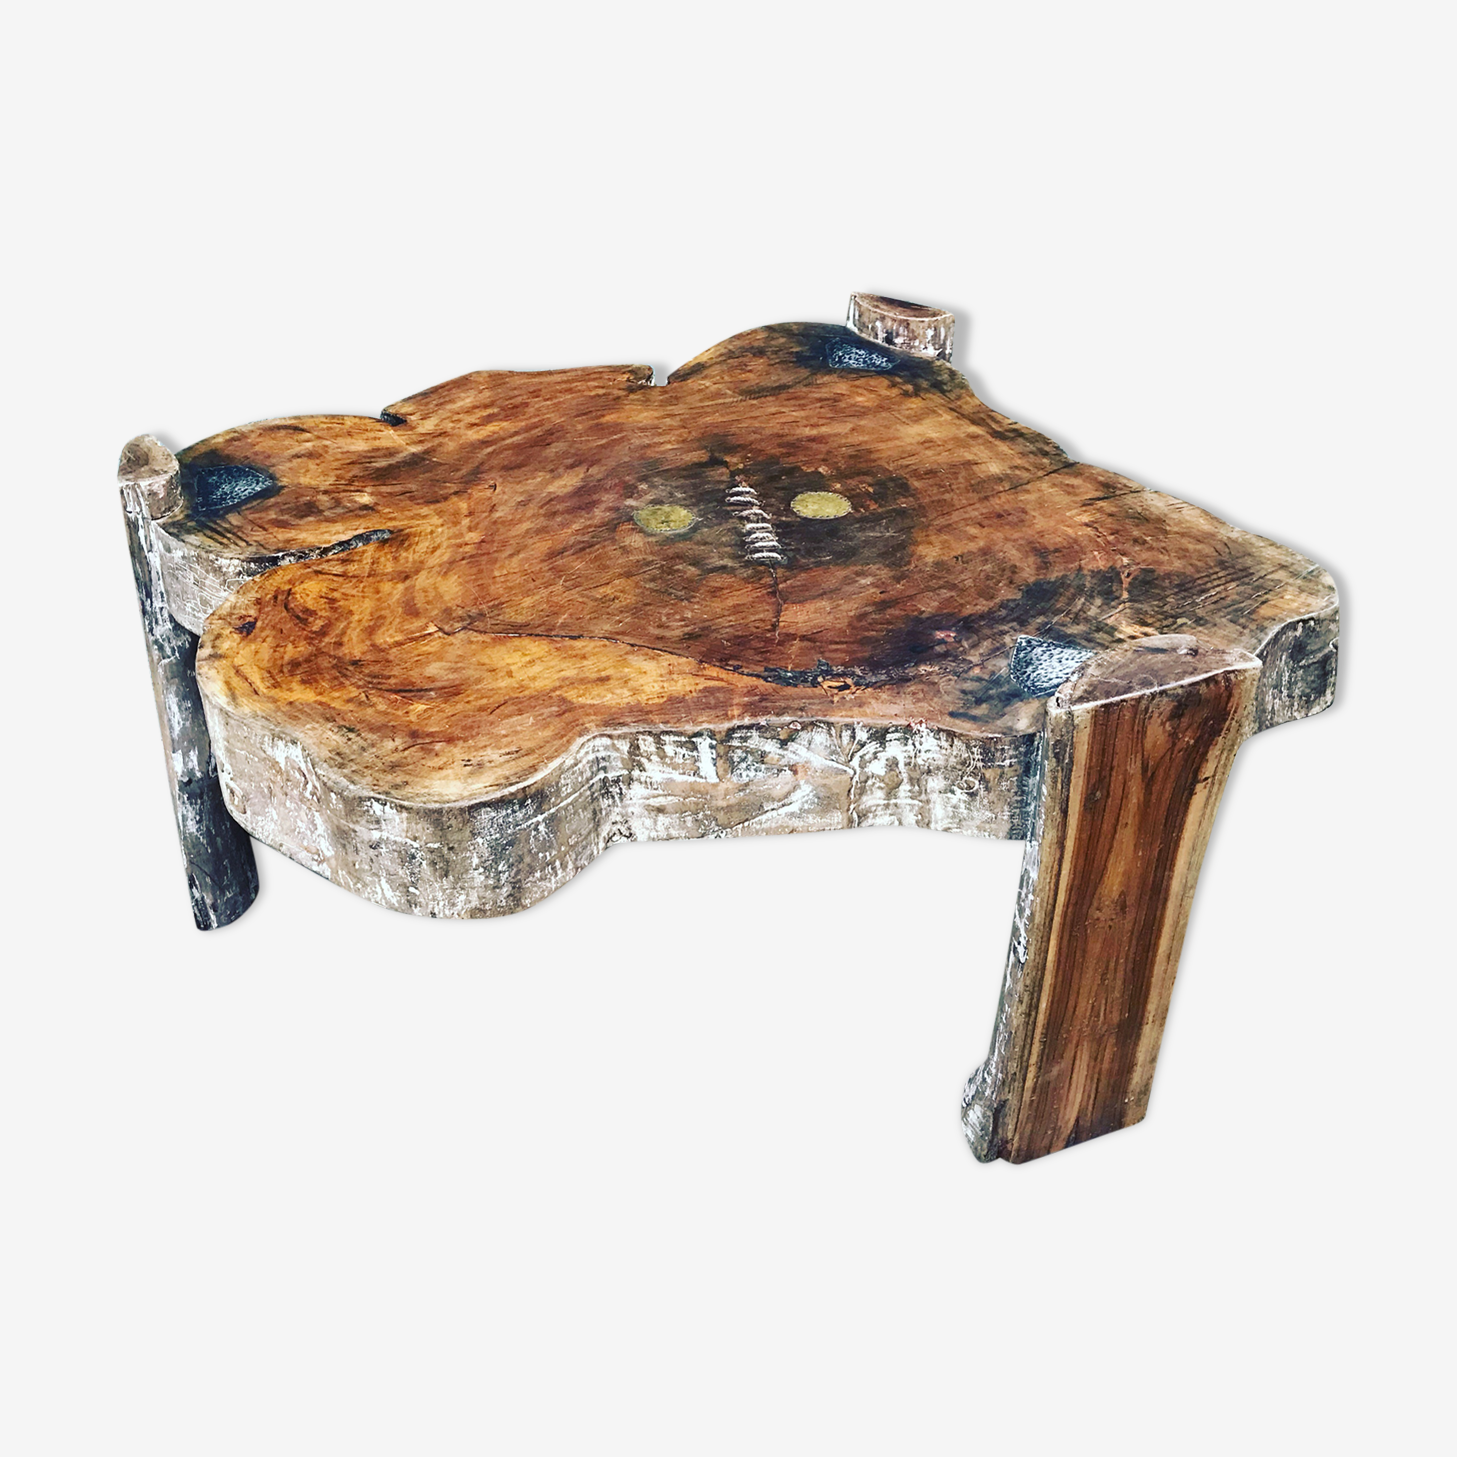 Table basse tronc d'arbre exotique